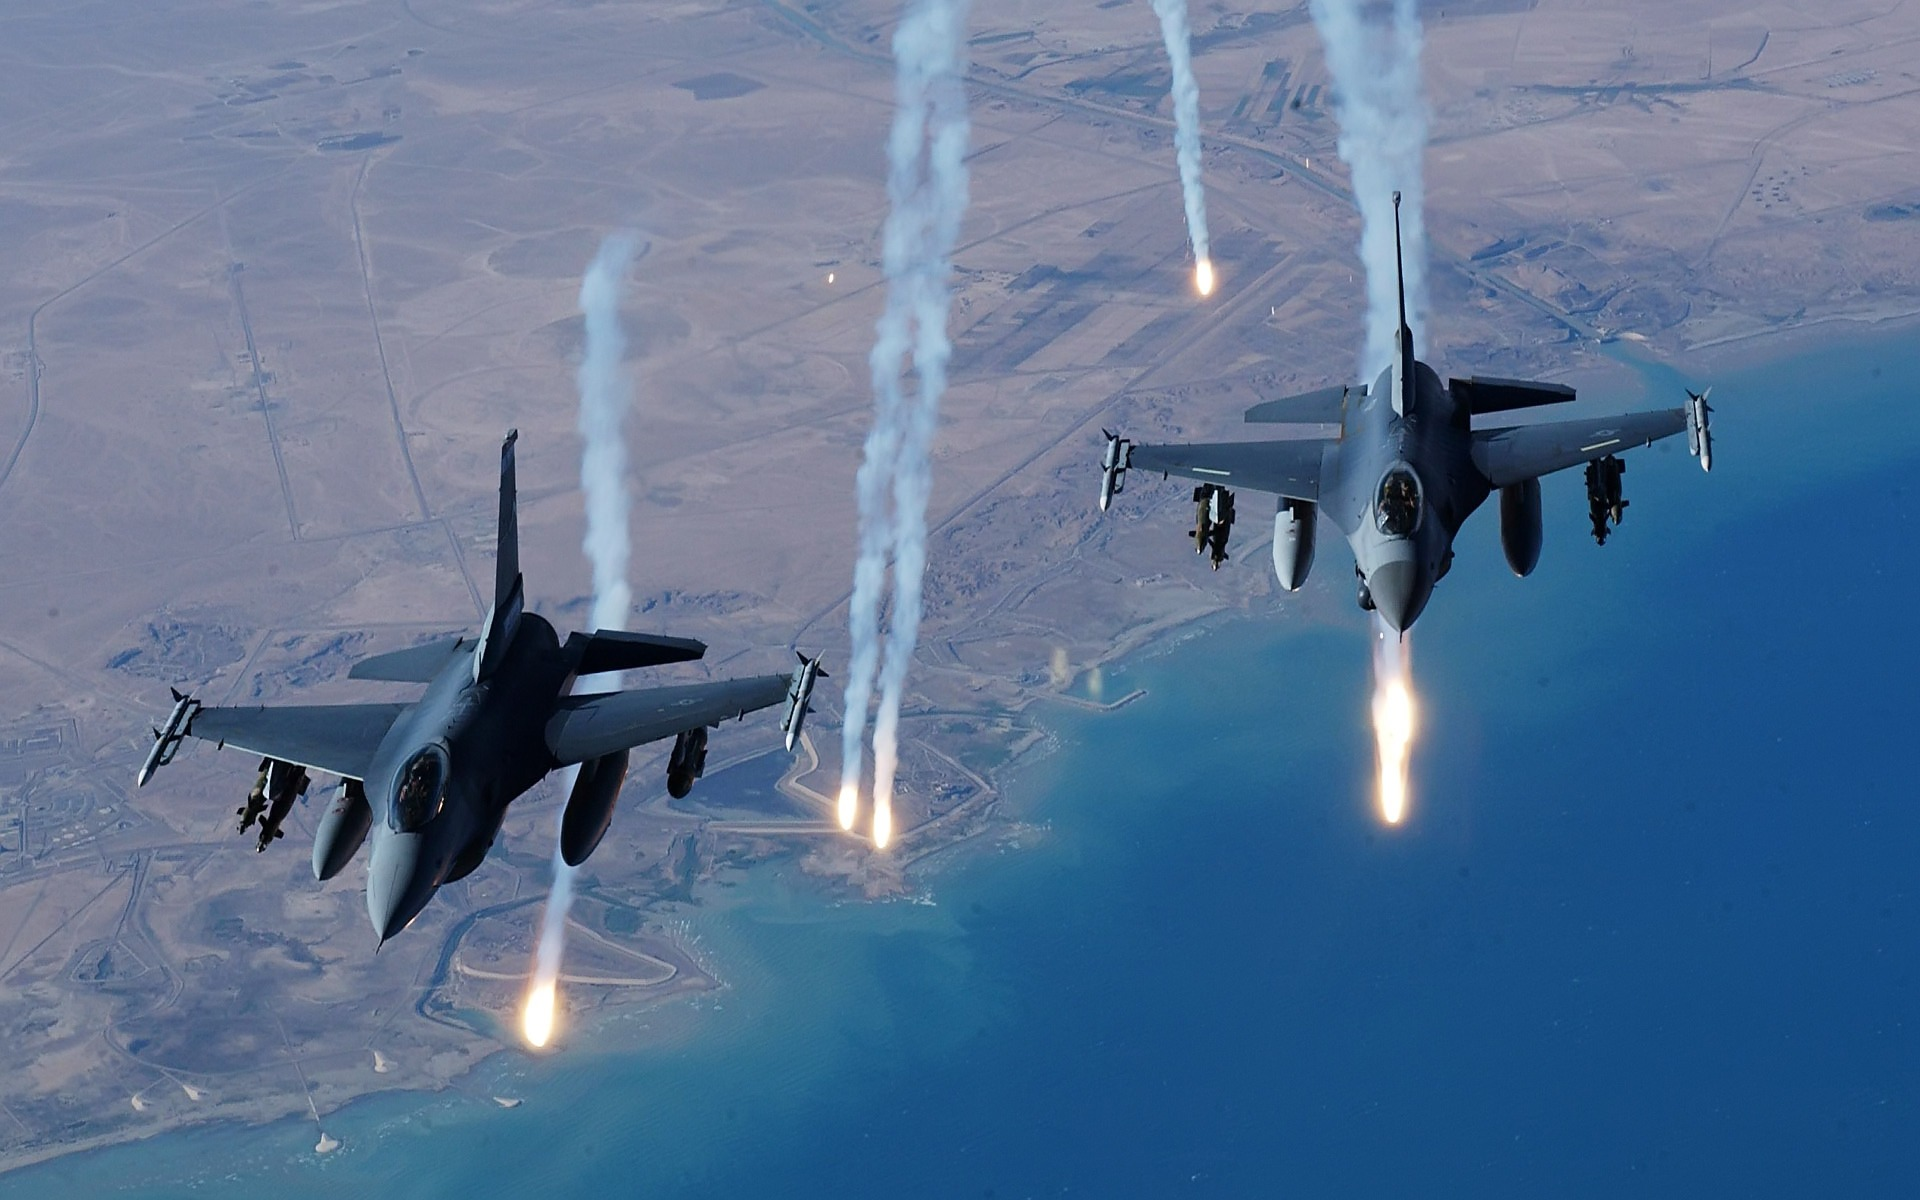 Wallpaper Cars Fighter Jets Wallpaper Military Aircrafts Planes